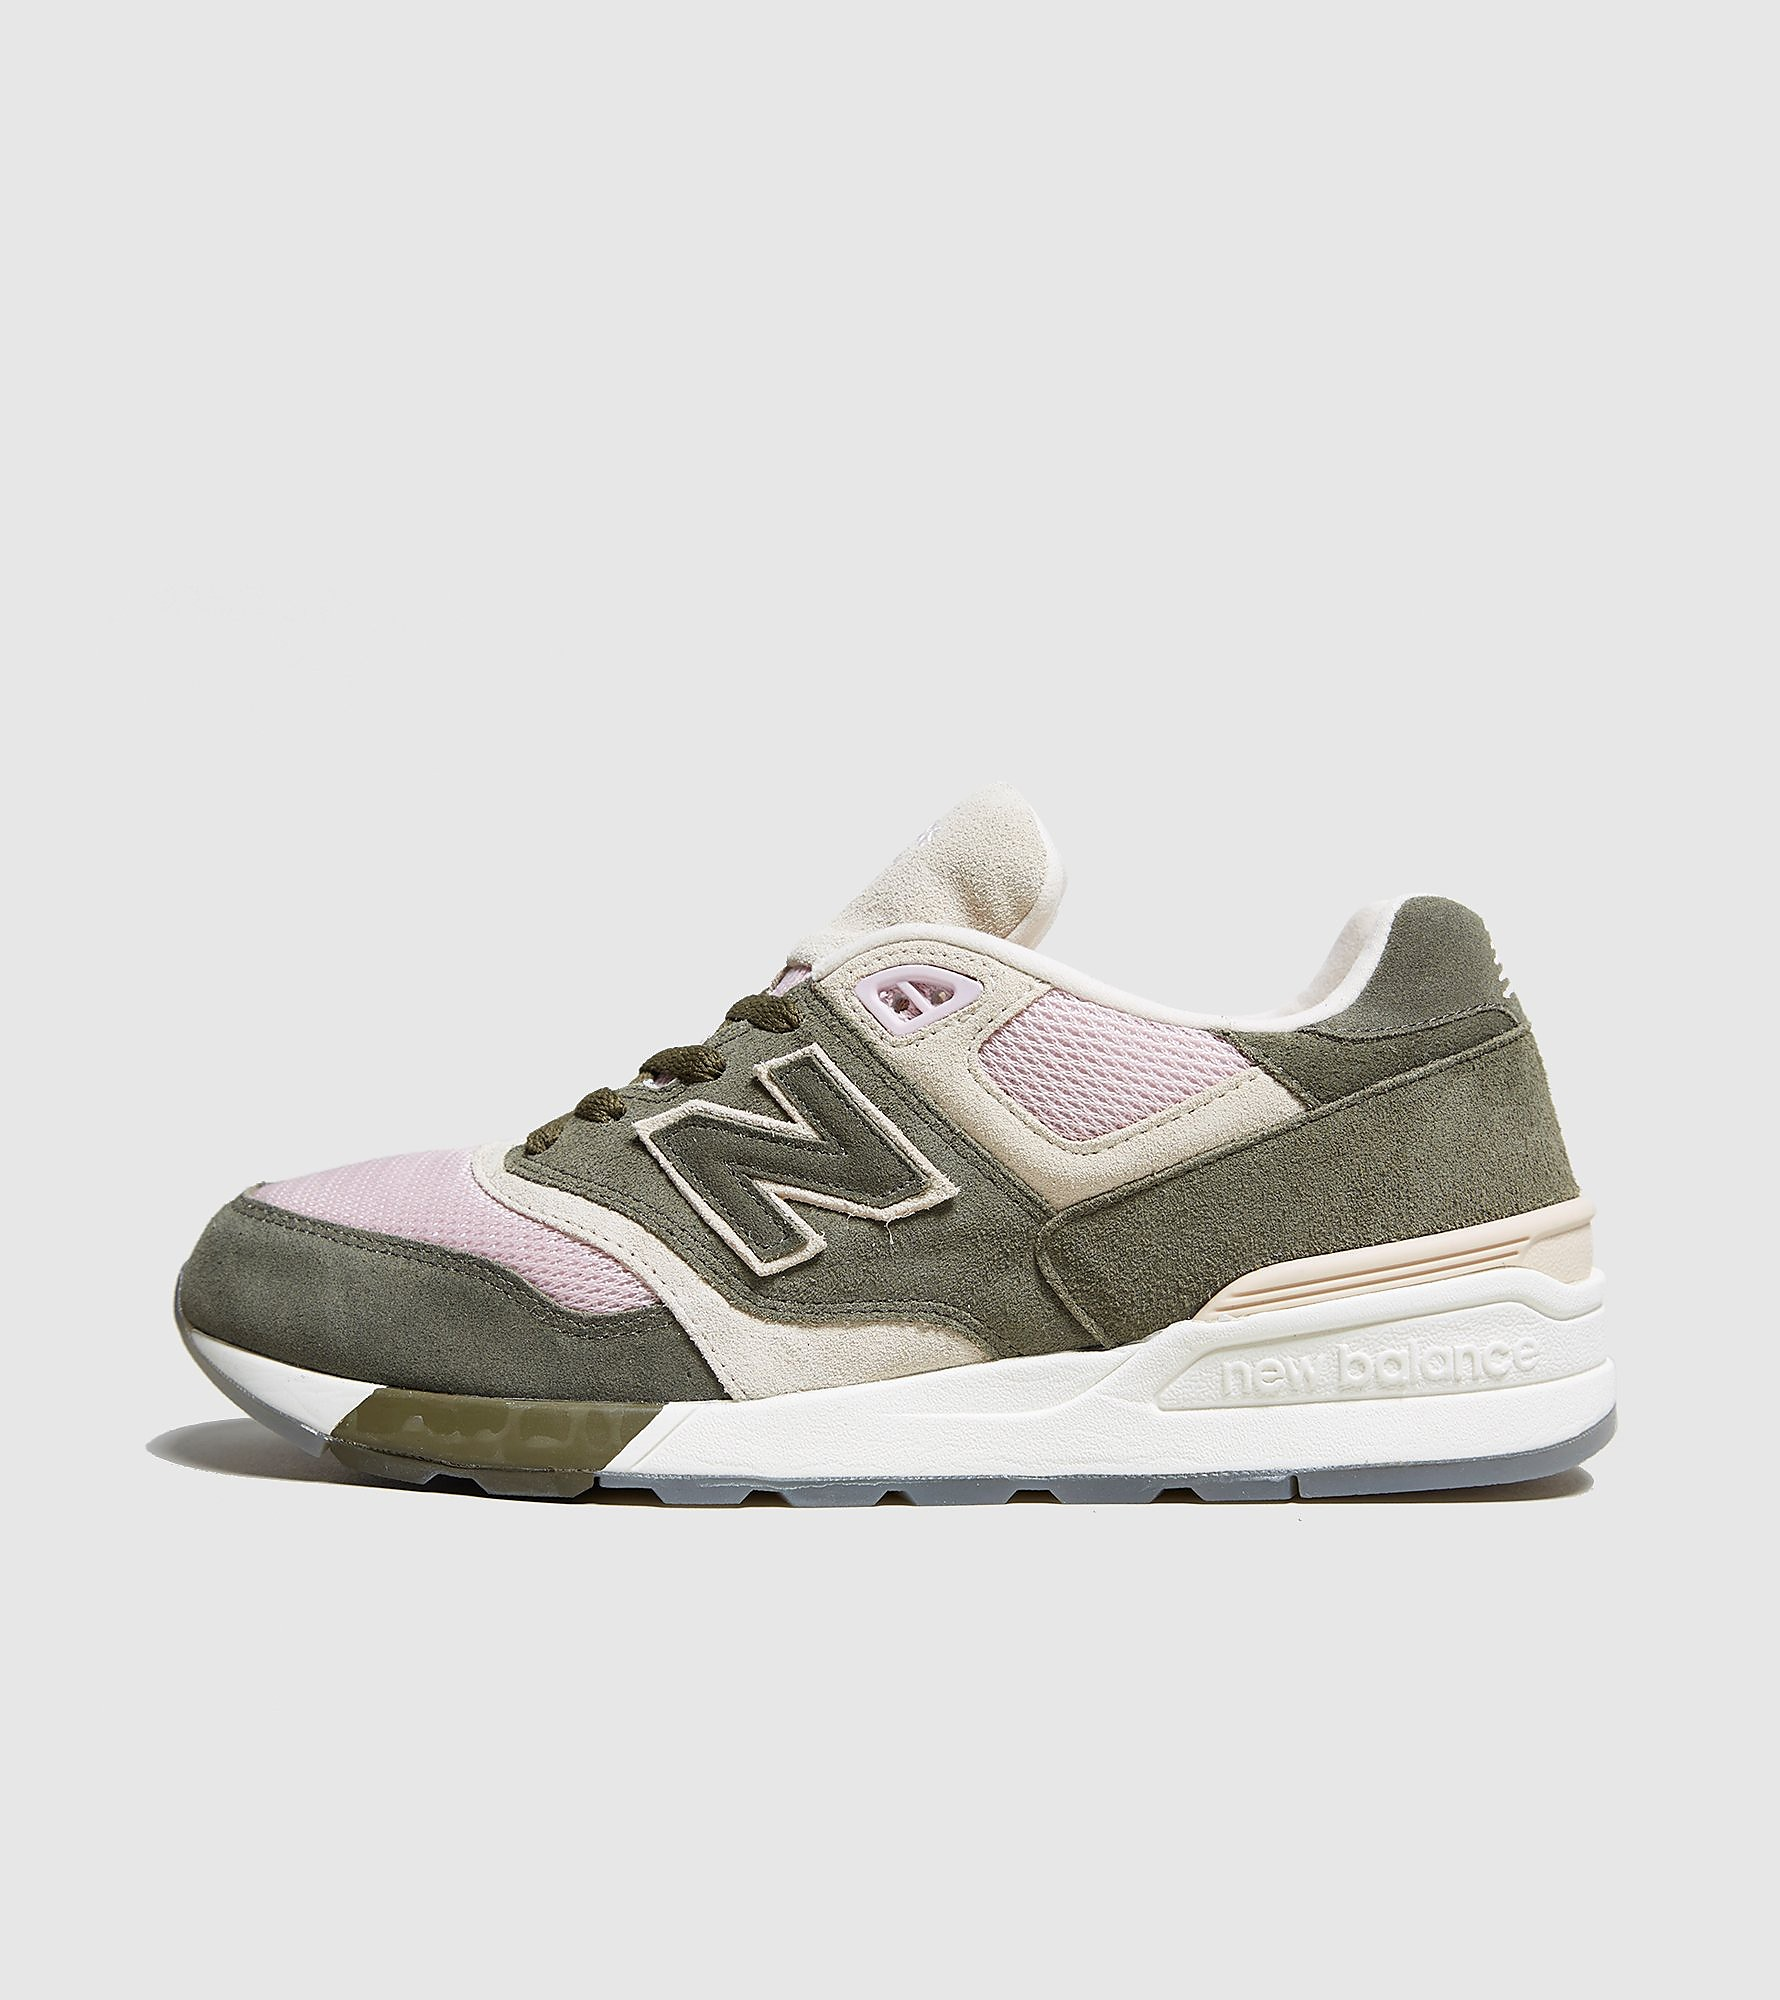 New Balance 597 - Exclusivité size?